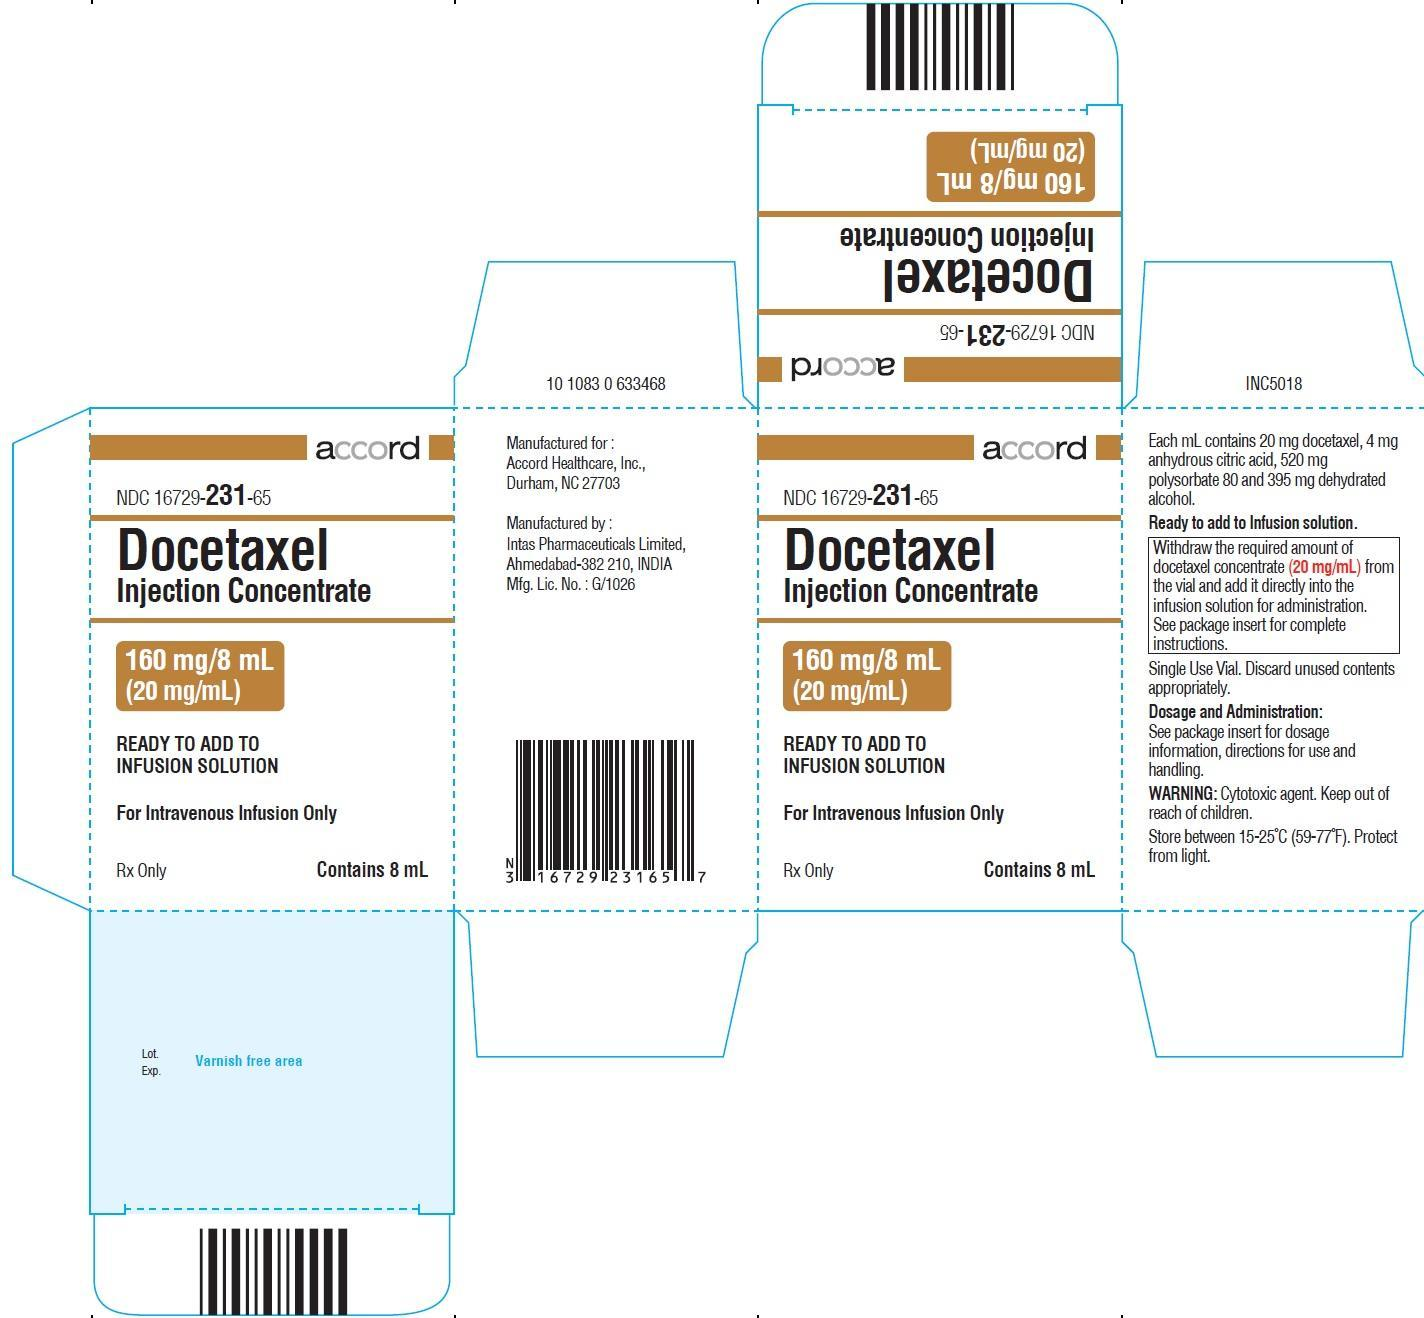 PACKAGE LABEL-PRINCIPAL DISPLAY PANEL - One-vial formulation (Injection Concentrate)- Single Use